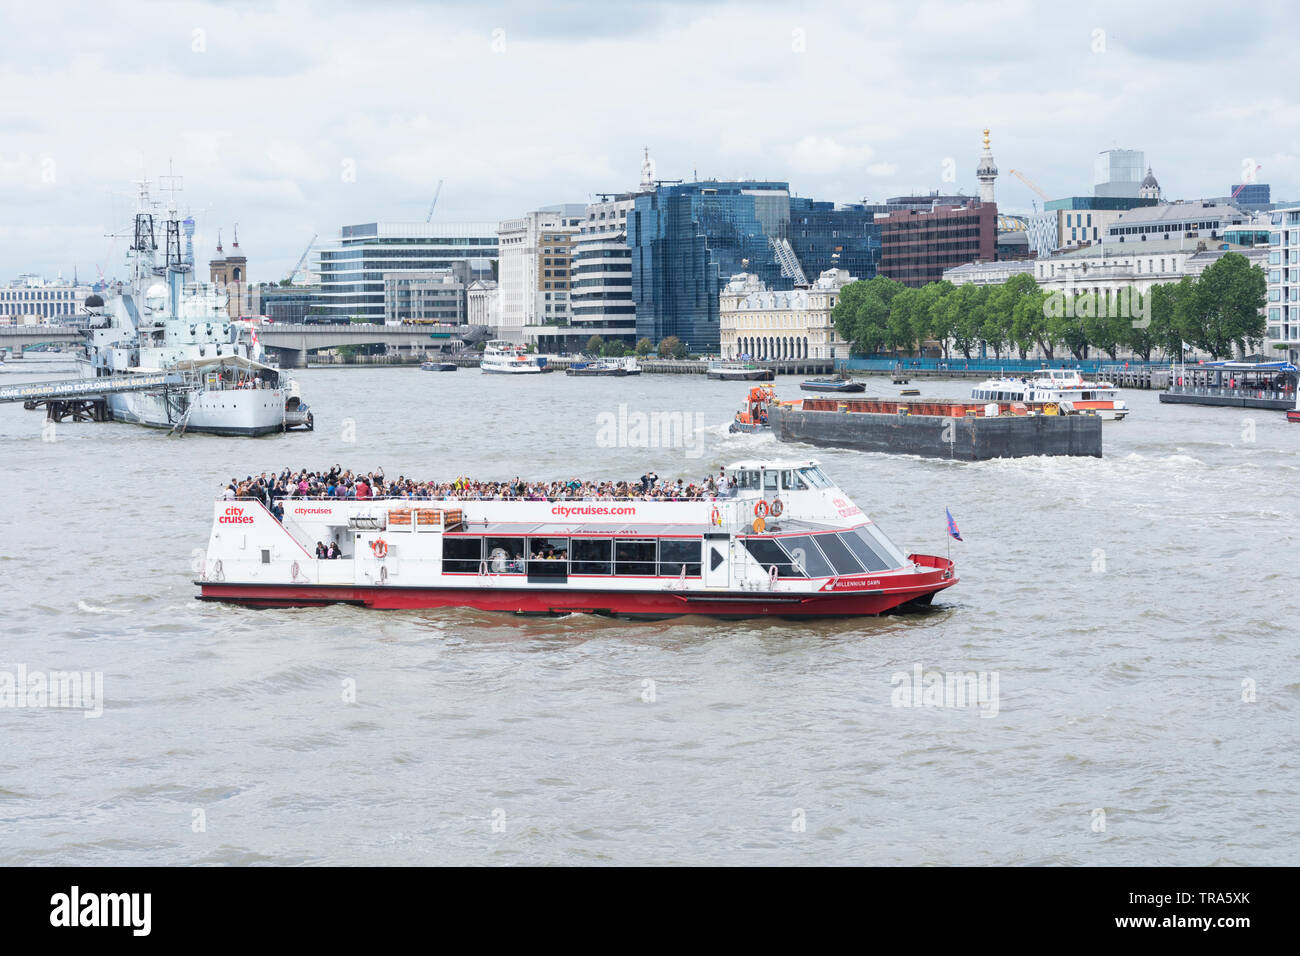 A City Cruises pleasure-boat in the Pool of London opposite the Tower of London with HMS Belfast in the background - Stock Image